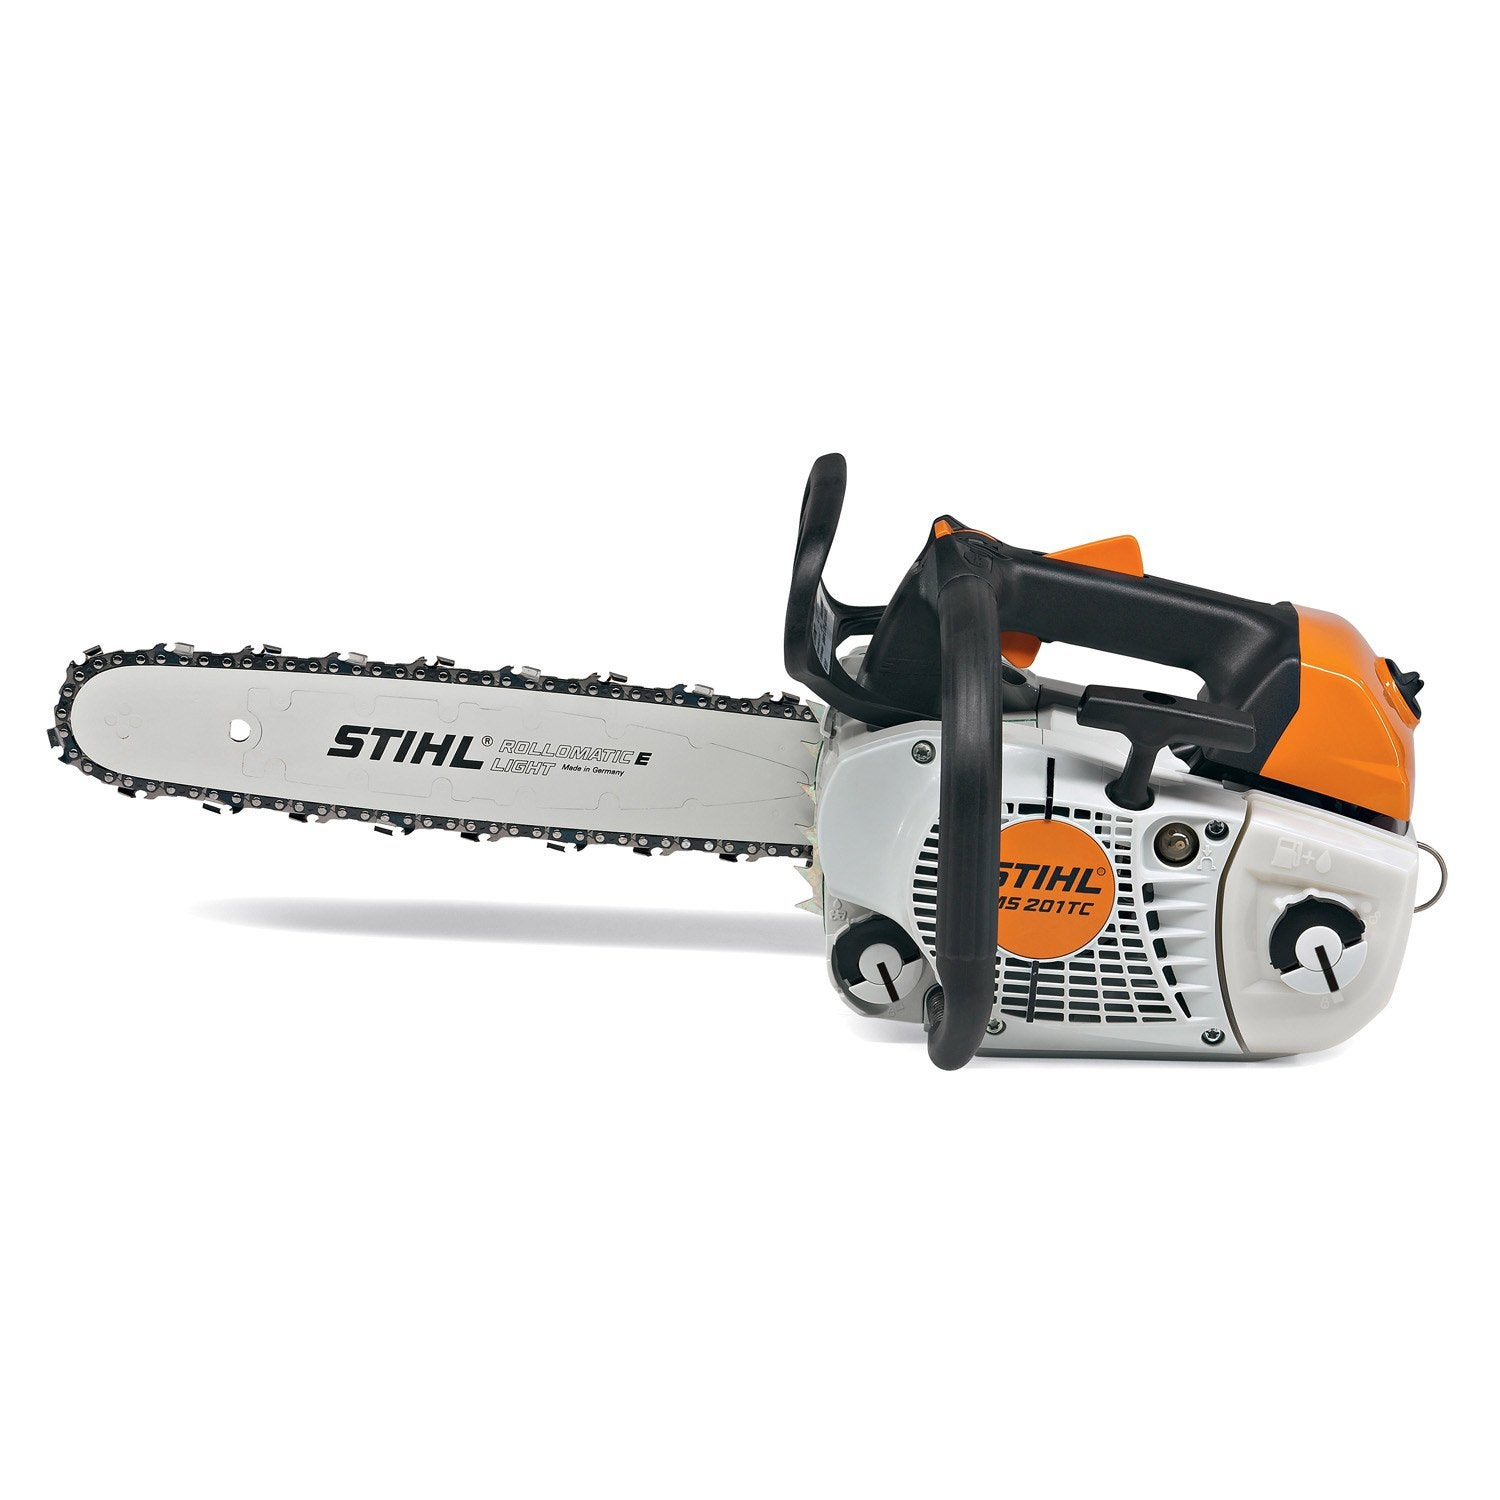 tron onneuse lagueuse essence stihl ms 201 tc m 35 2